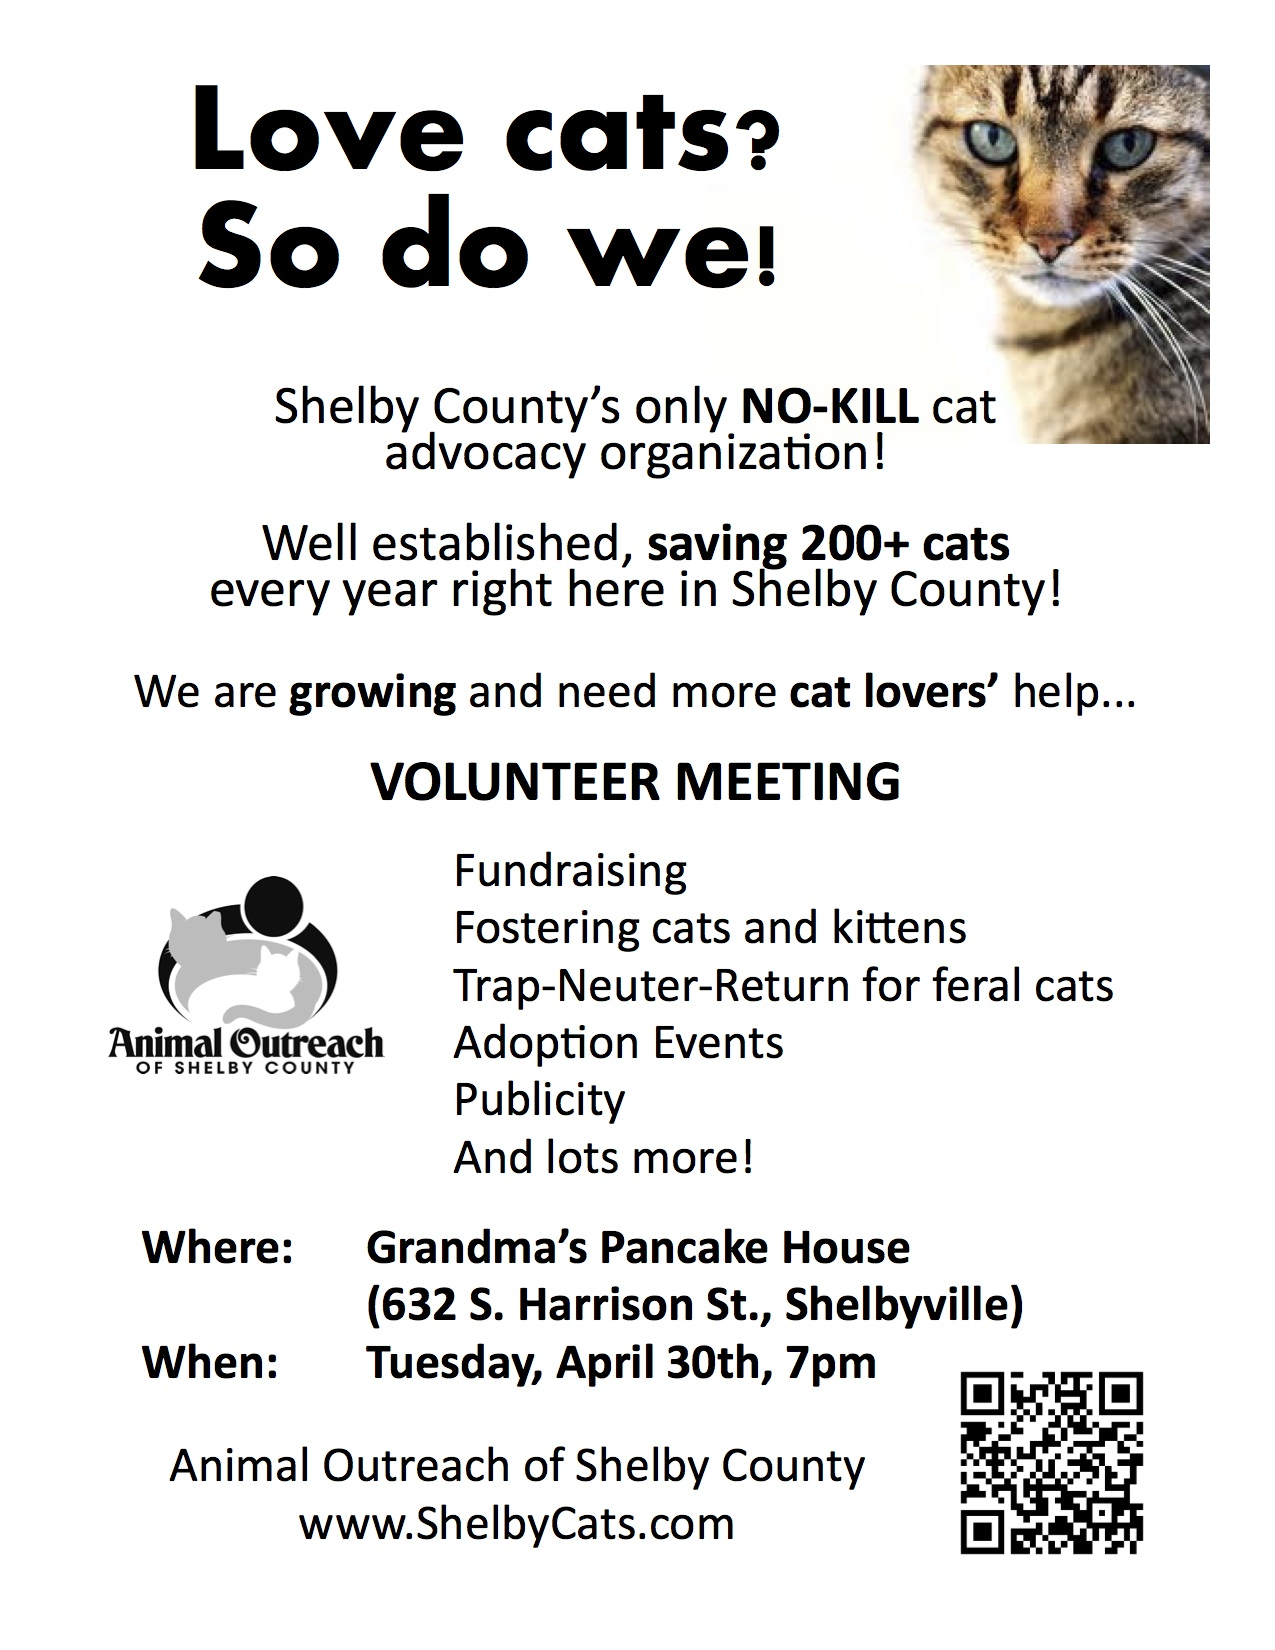 Animal Outreach Volunteer Meeting Flyer